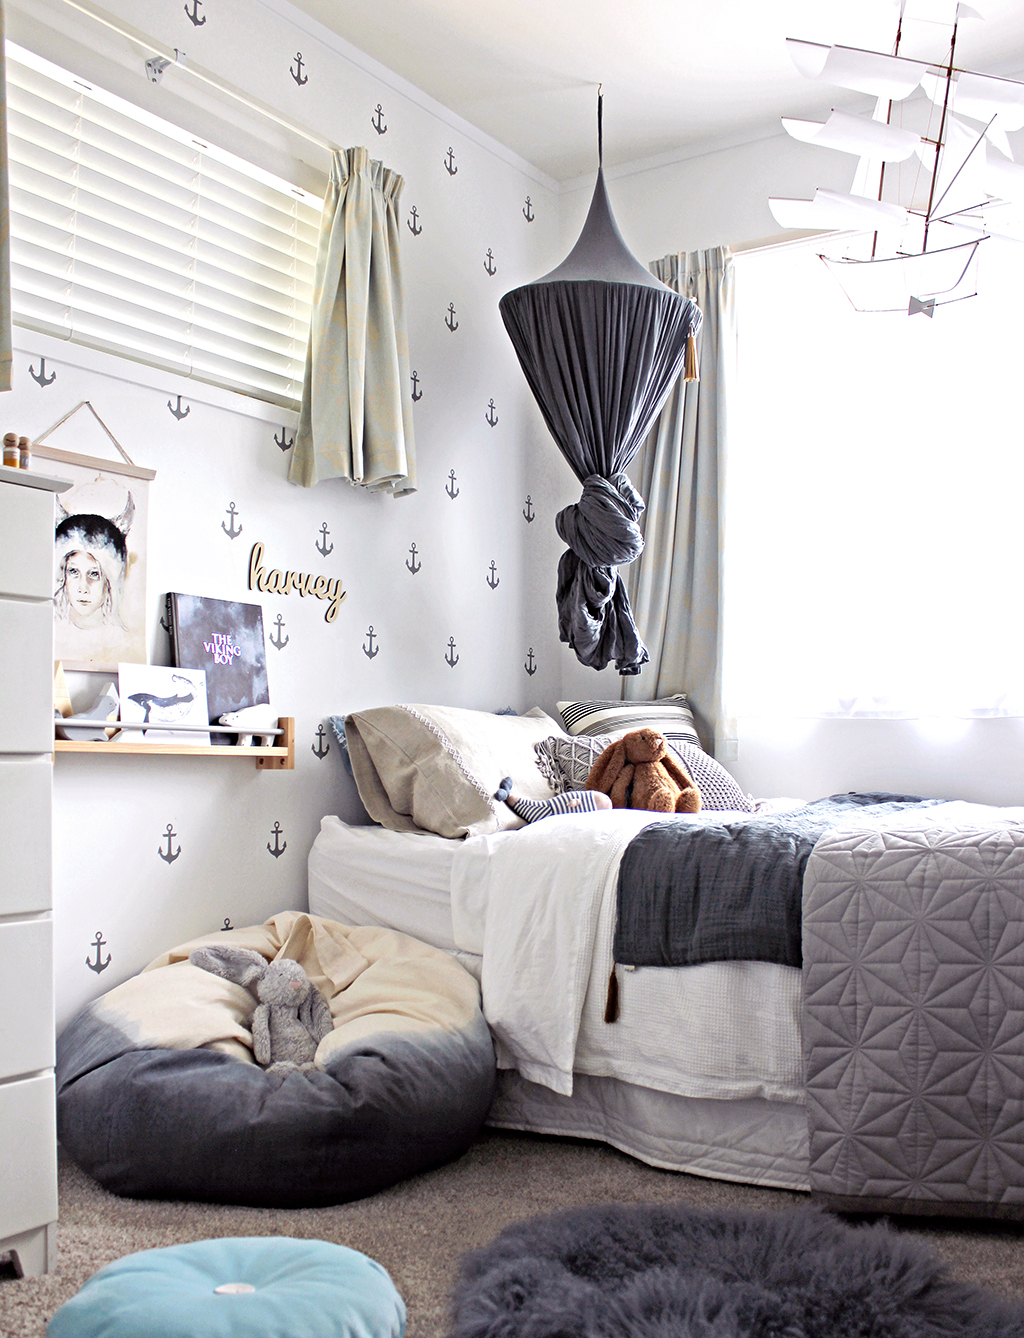 Canopy_Tied_Toddler_Boys_Bedroom_Makeover_by_Clever_Poppy.jpg